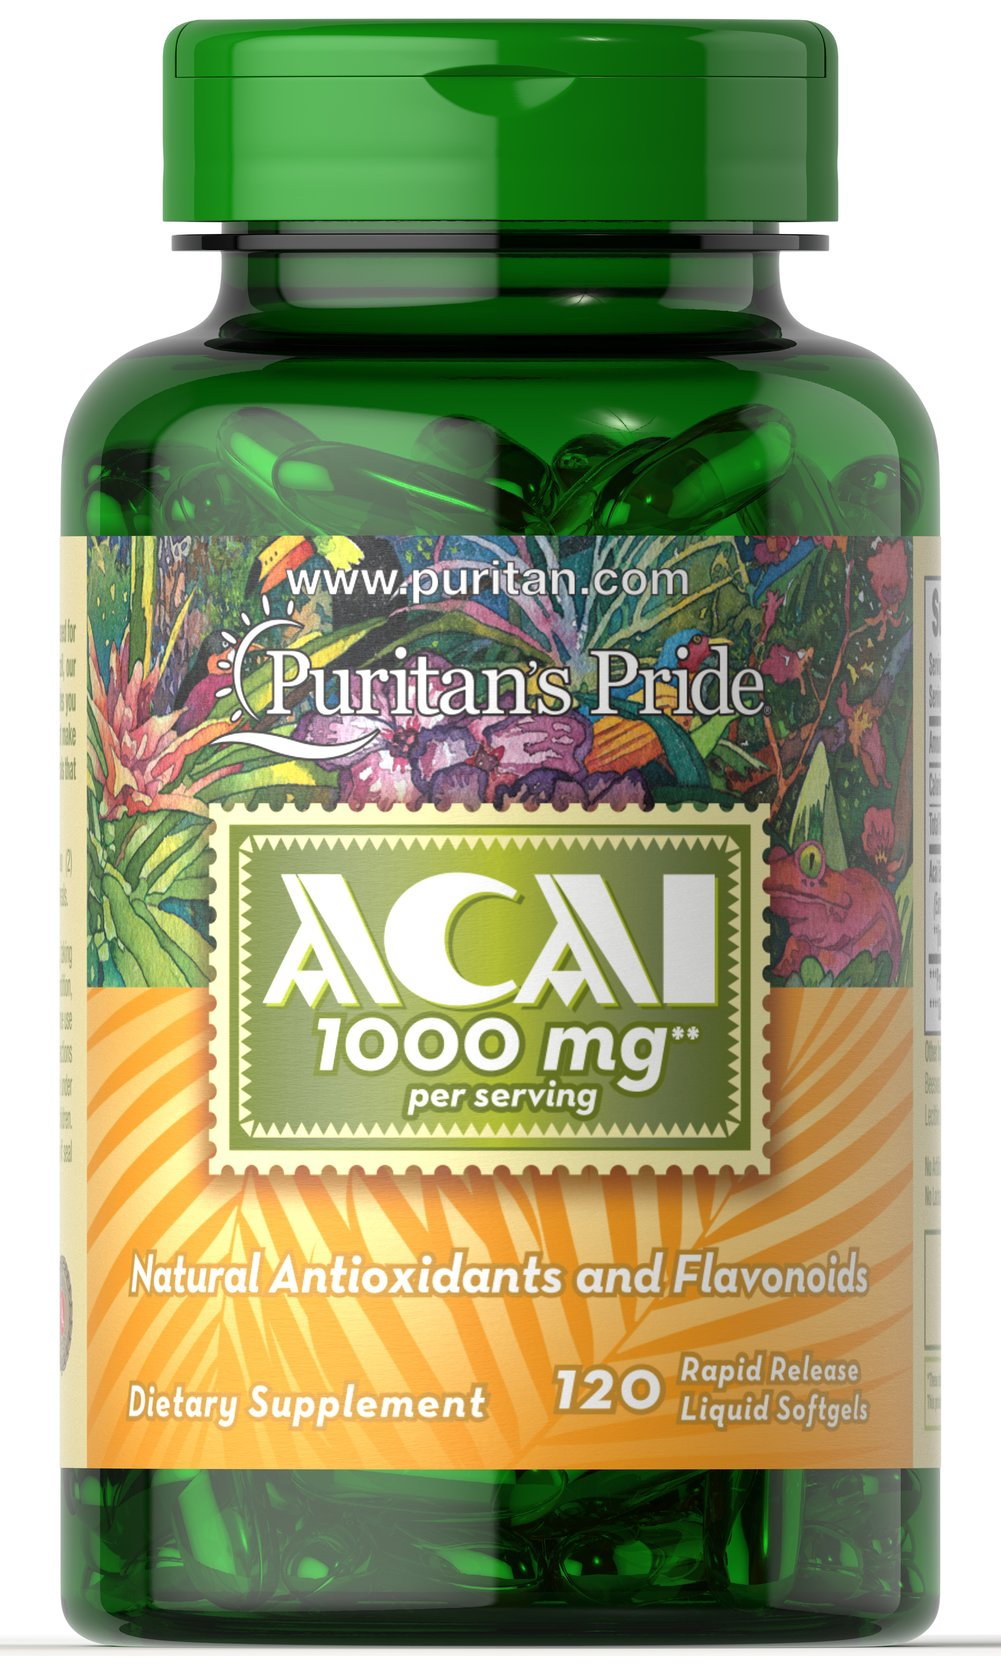 Acai 1000 mg Thumbnail Alternate Bottle View